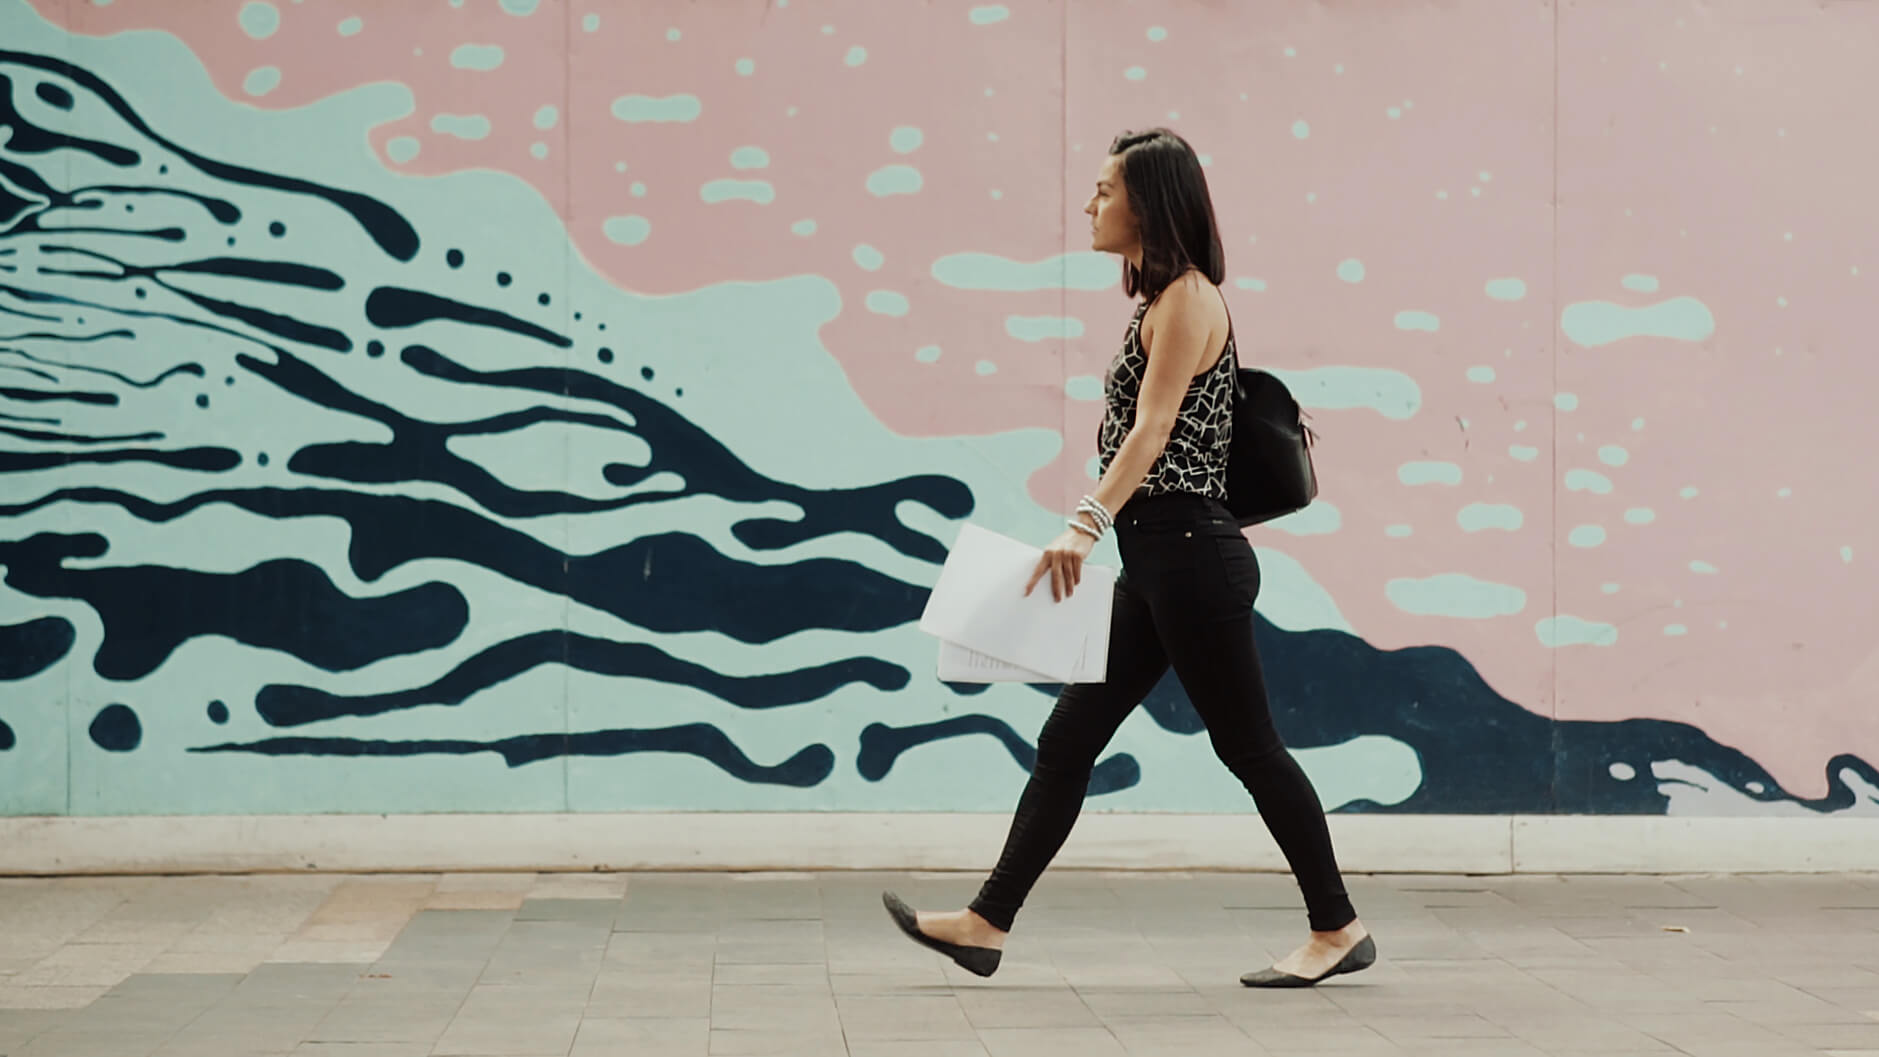 still frame from creative promotional film: women walking on streets with resumes on her hands